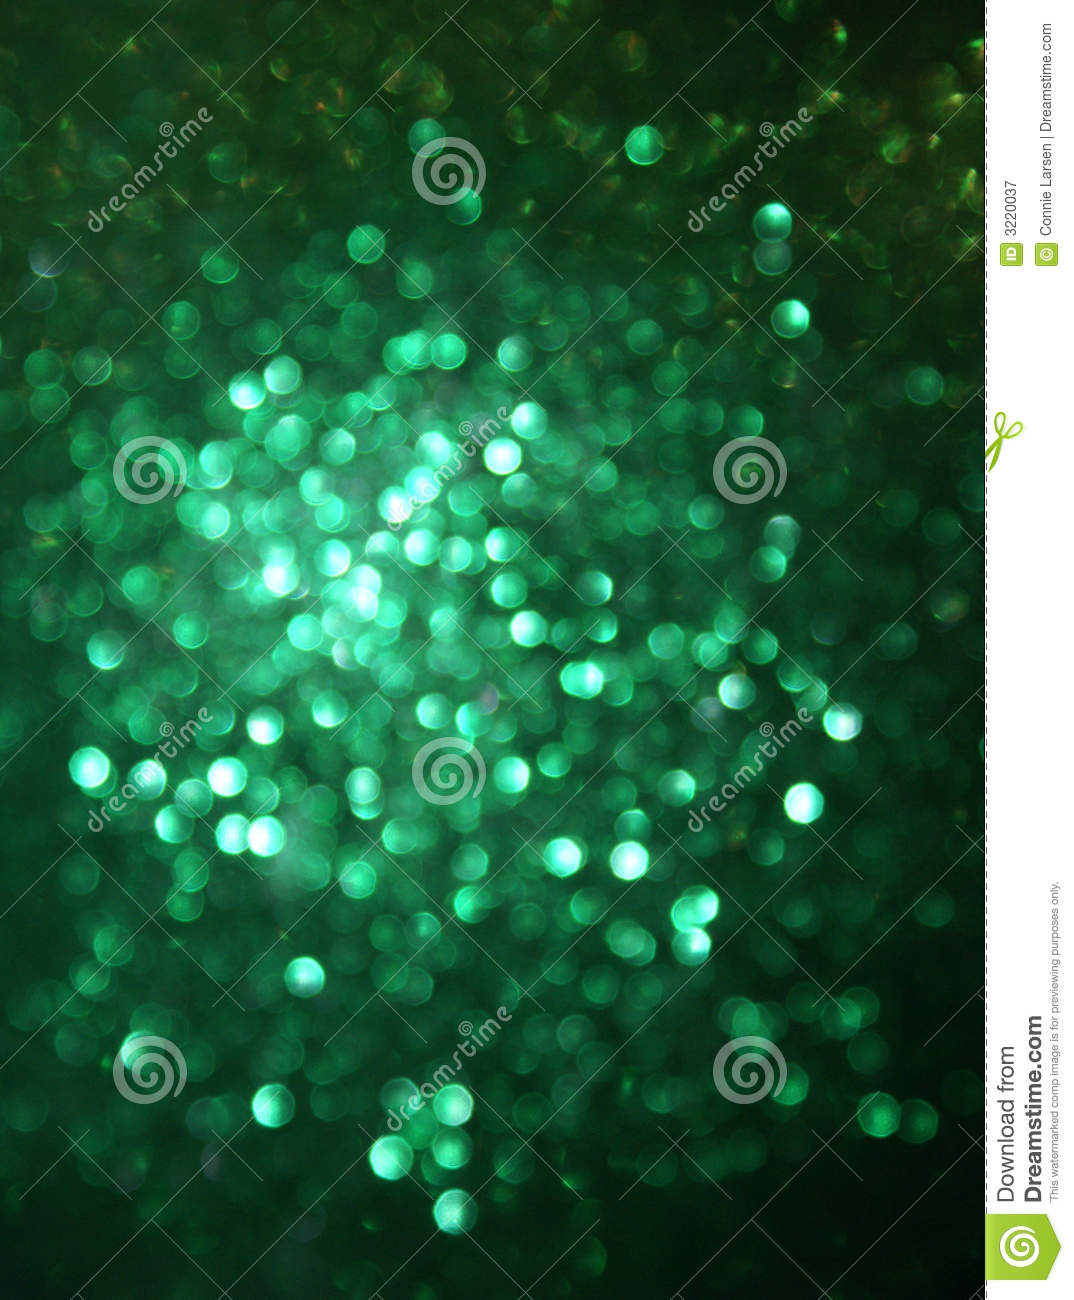 green glittery blur background royalty free stock